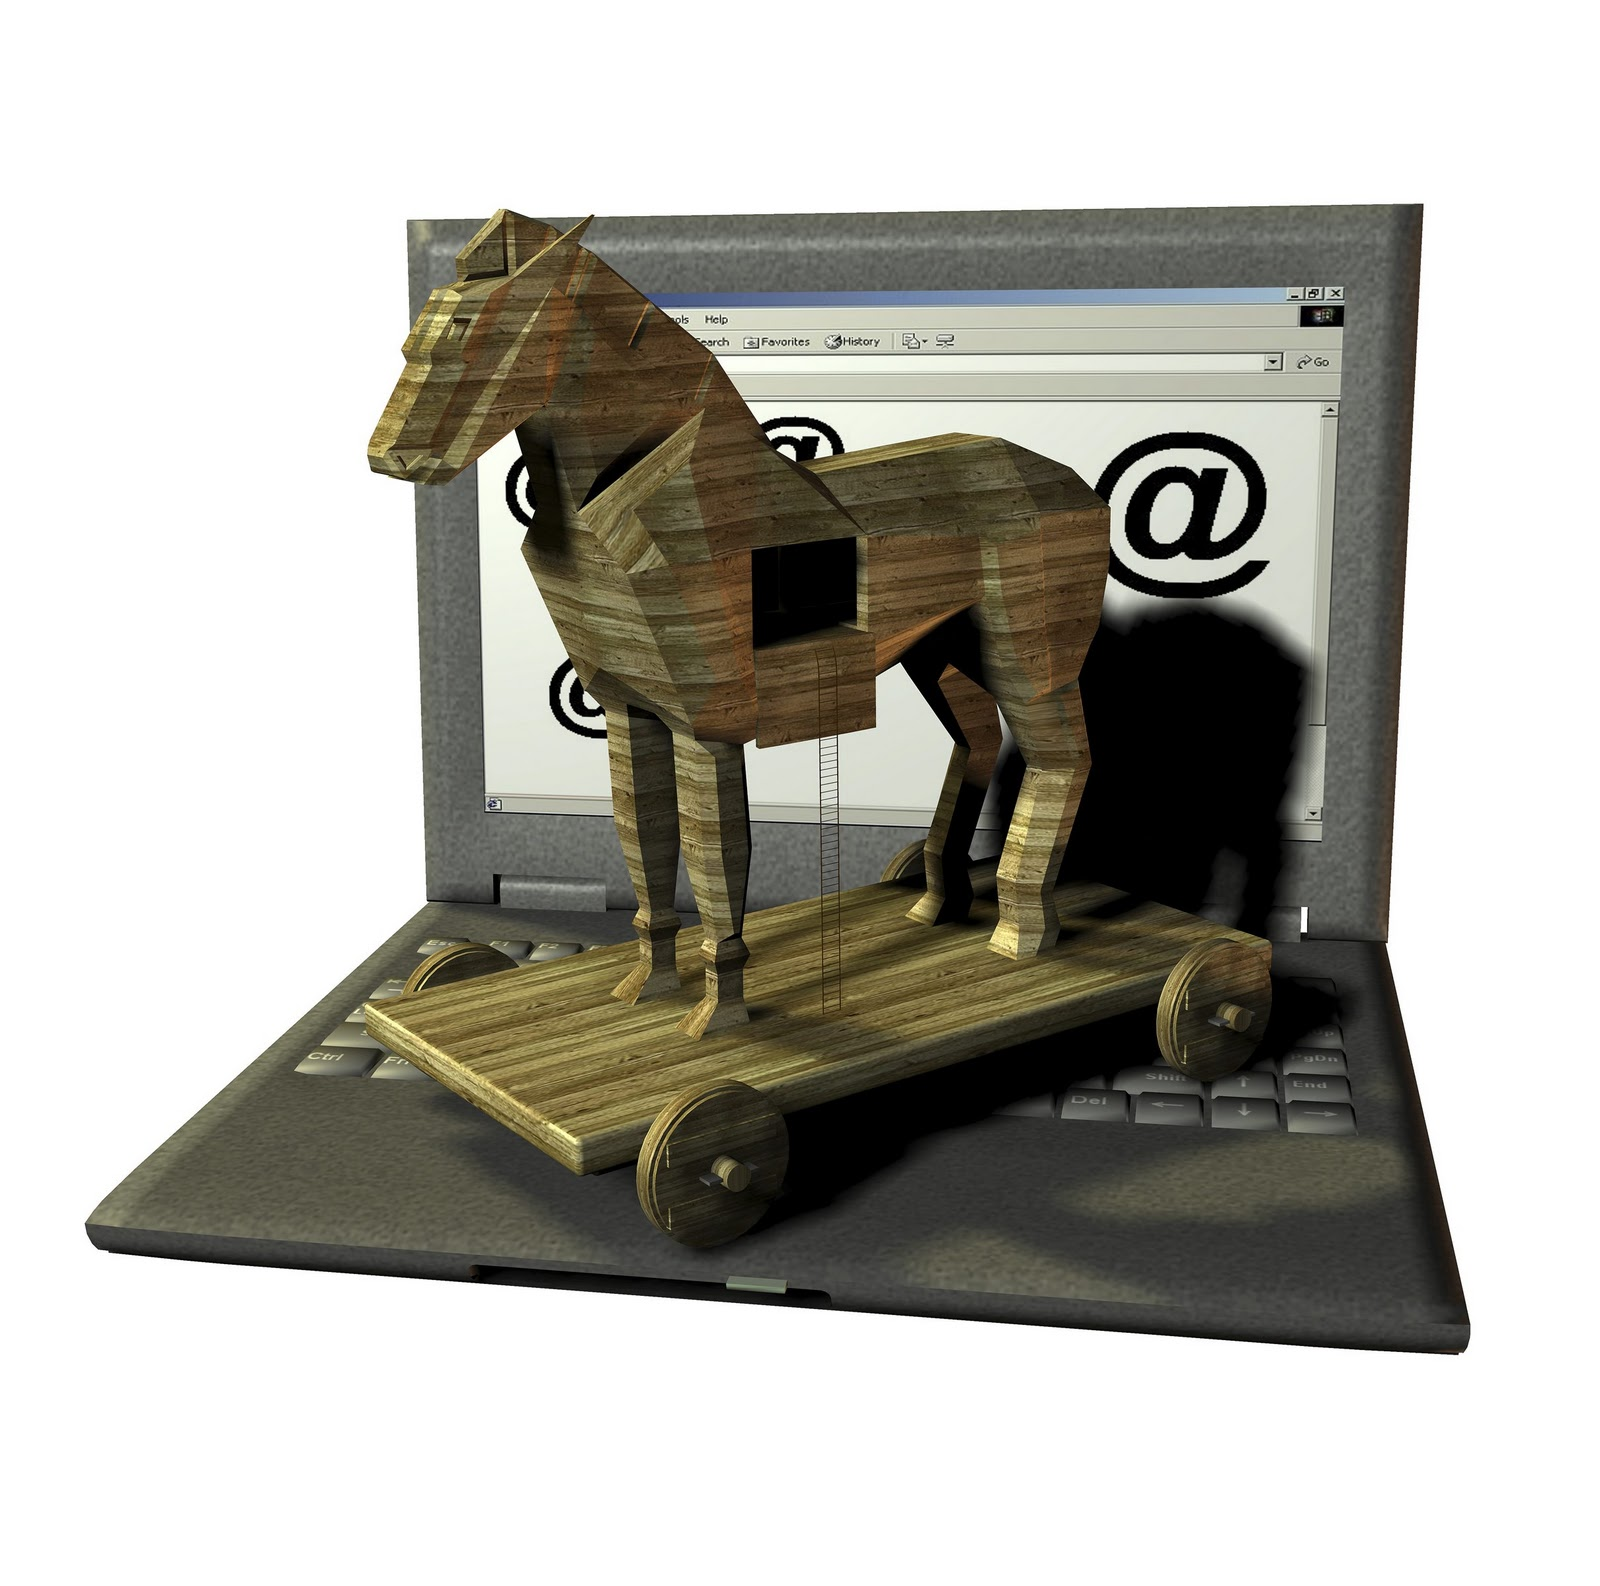 trojan horses information - Computer Technology